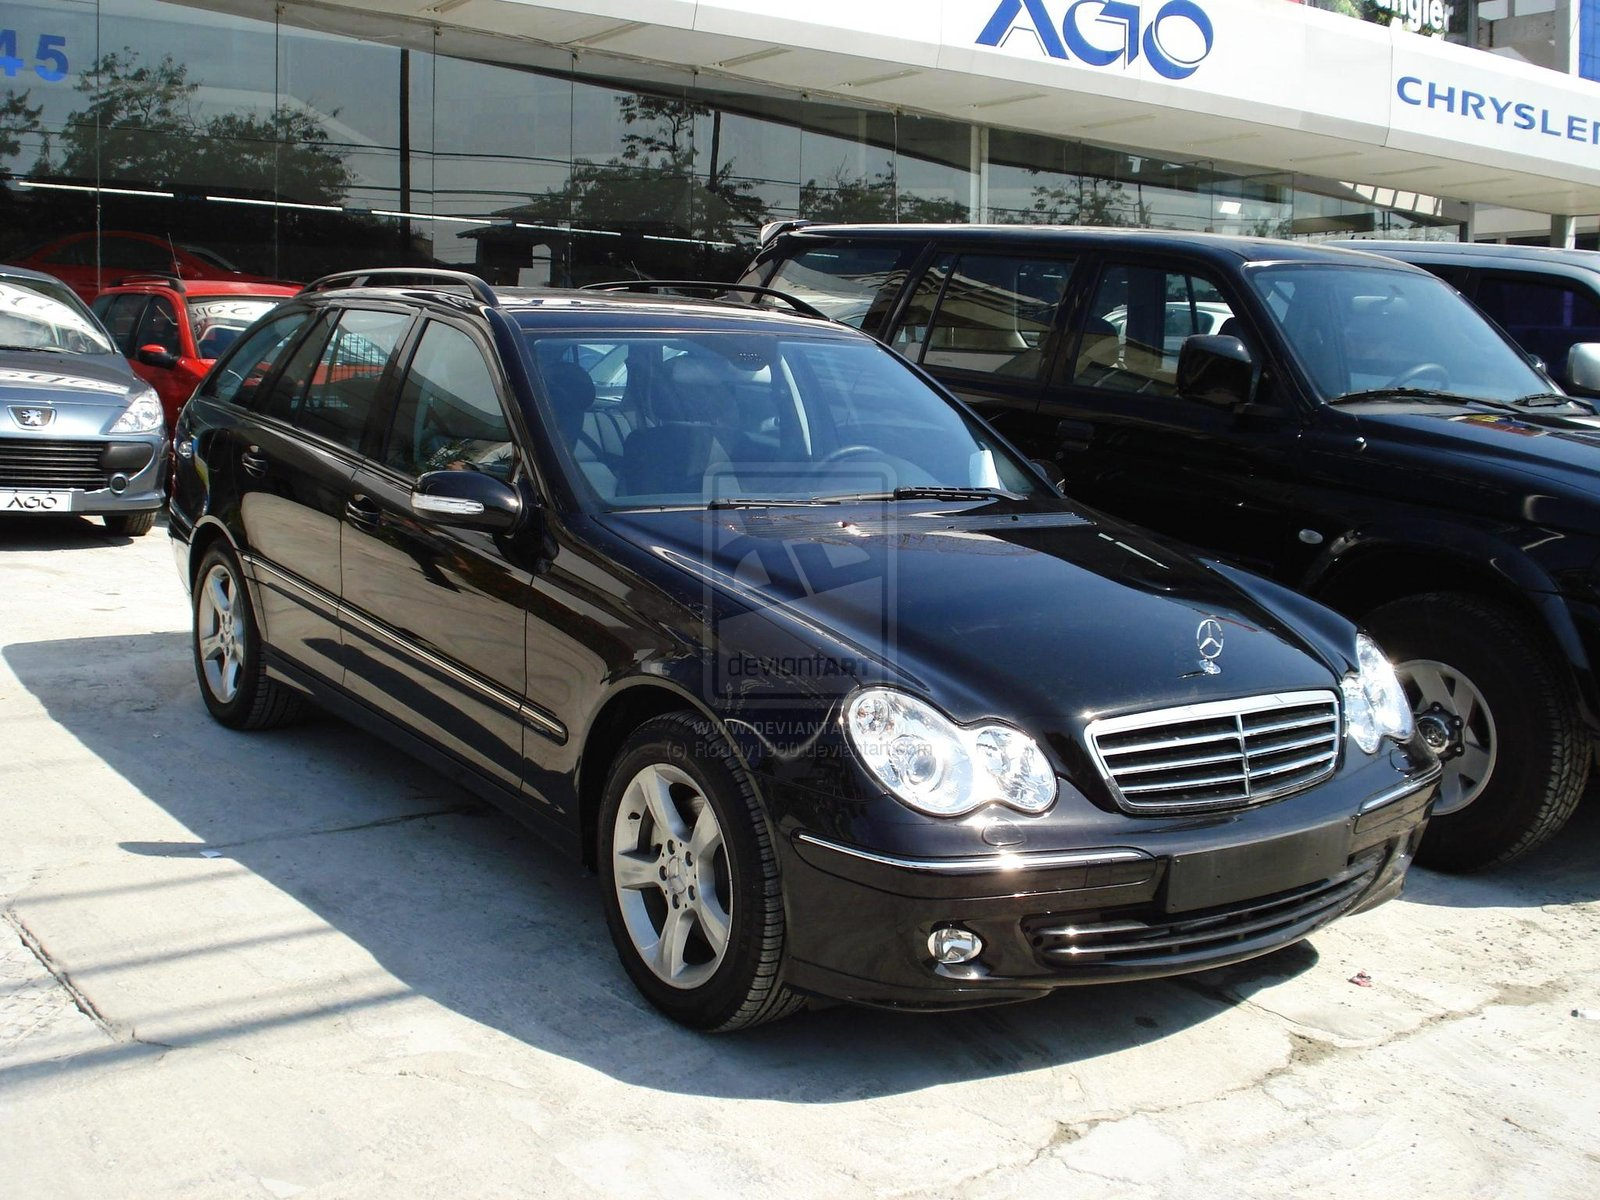 Mercedes benz c 230 touring photos reviews news specs for Mercedes benz touring car